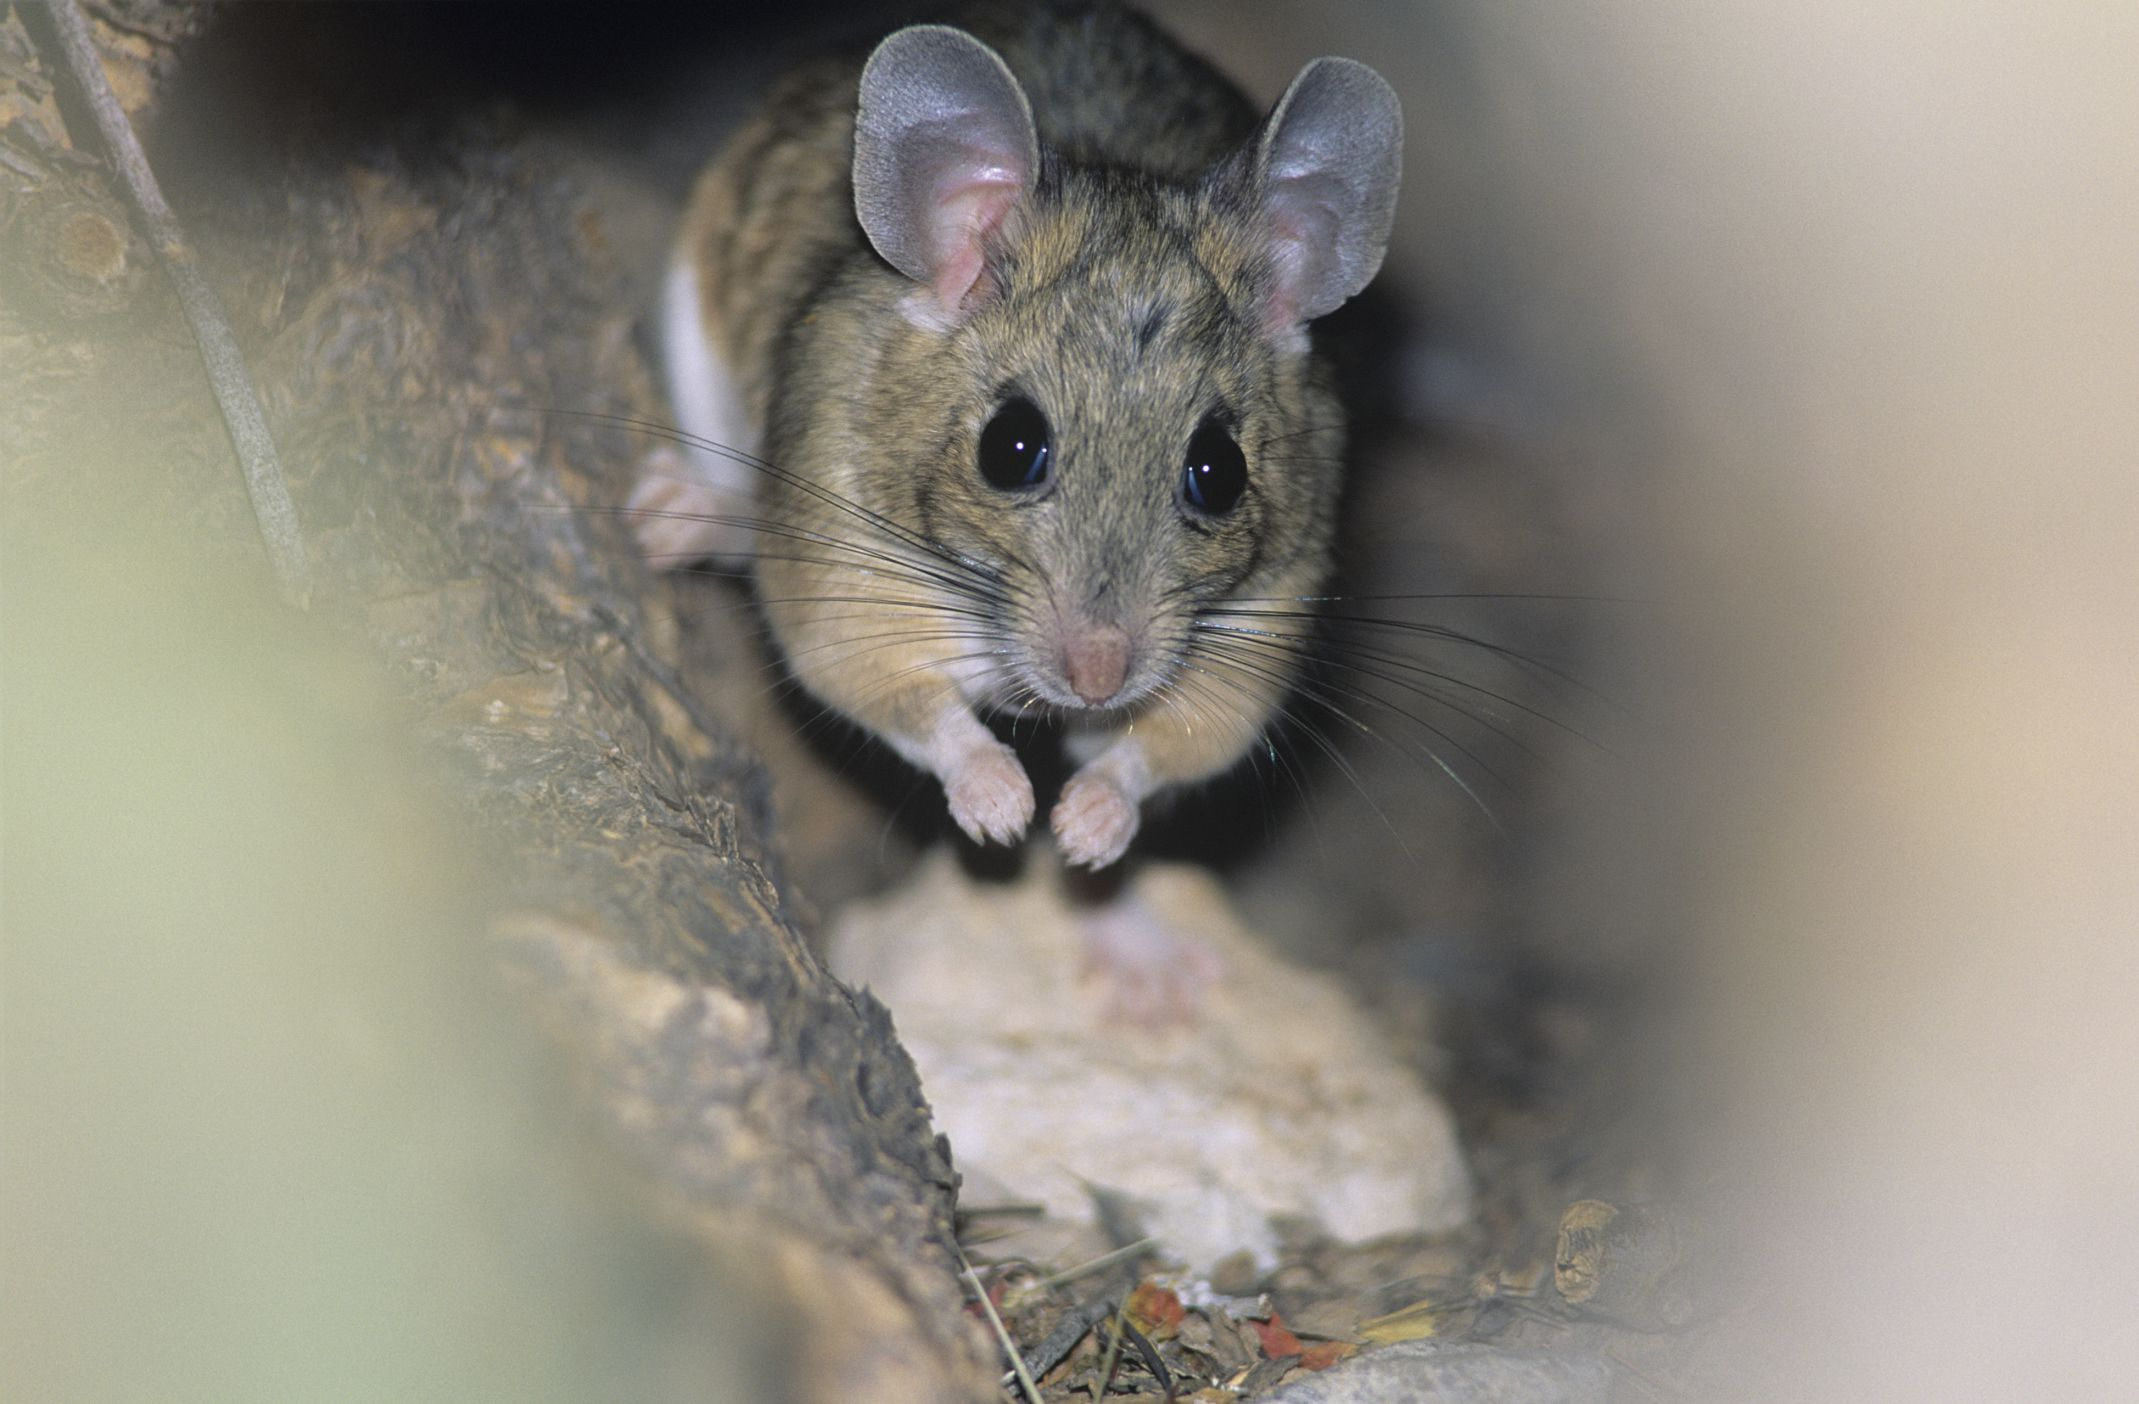 How To Get Rid Of Mice Forever Getting Rid Of Mice Mice Repellent Getting Rid Of Rats